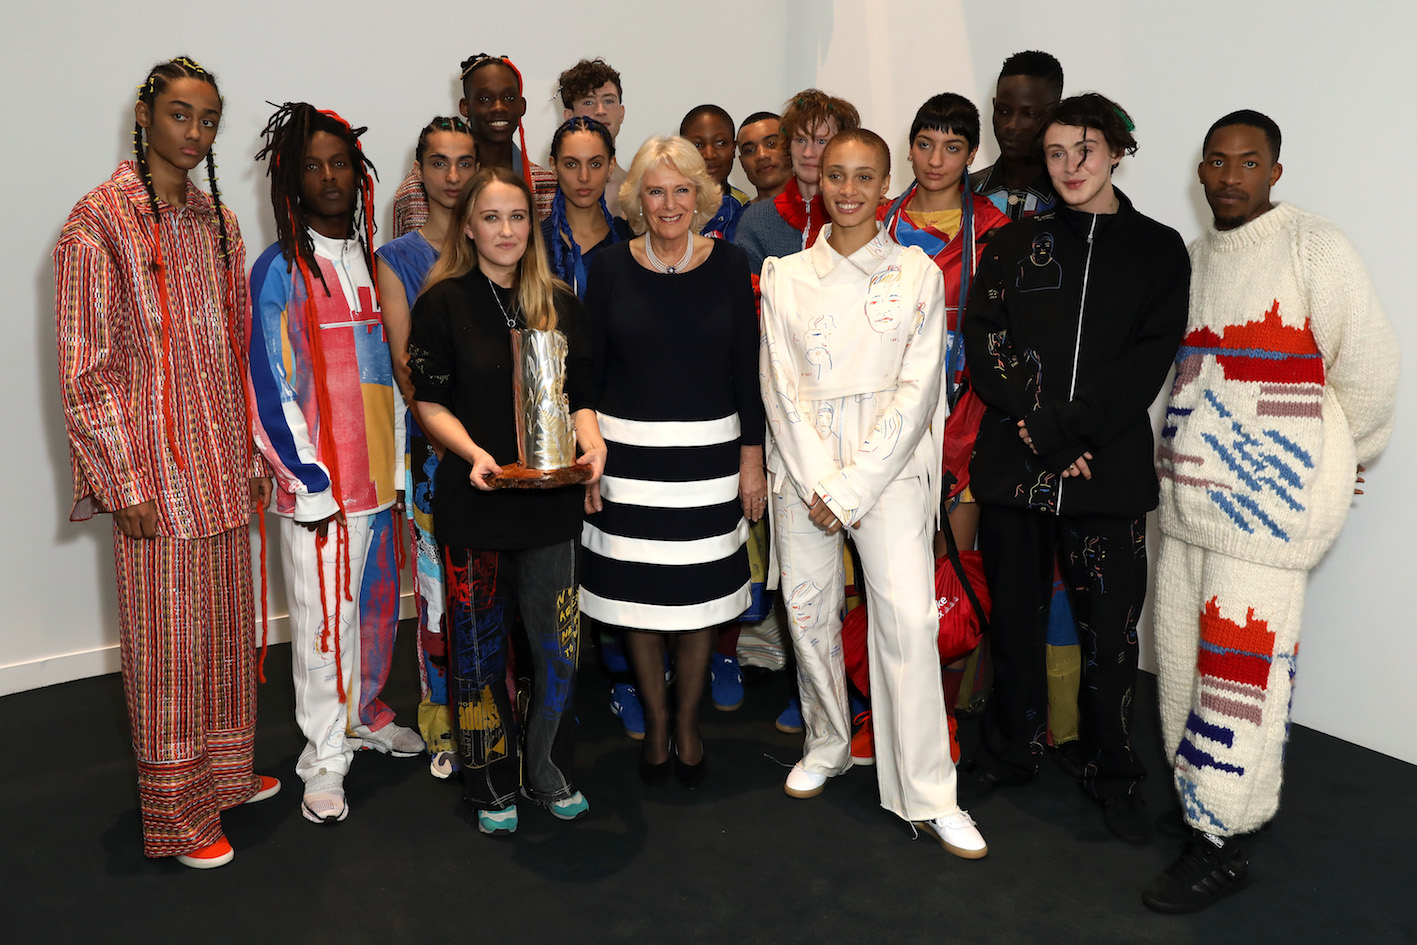 QEII Award 2019 winner Bethany Williams with models, and the Duchess of Cornwall. Photograph Darren Gerrish.